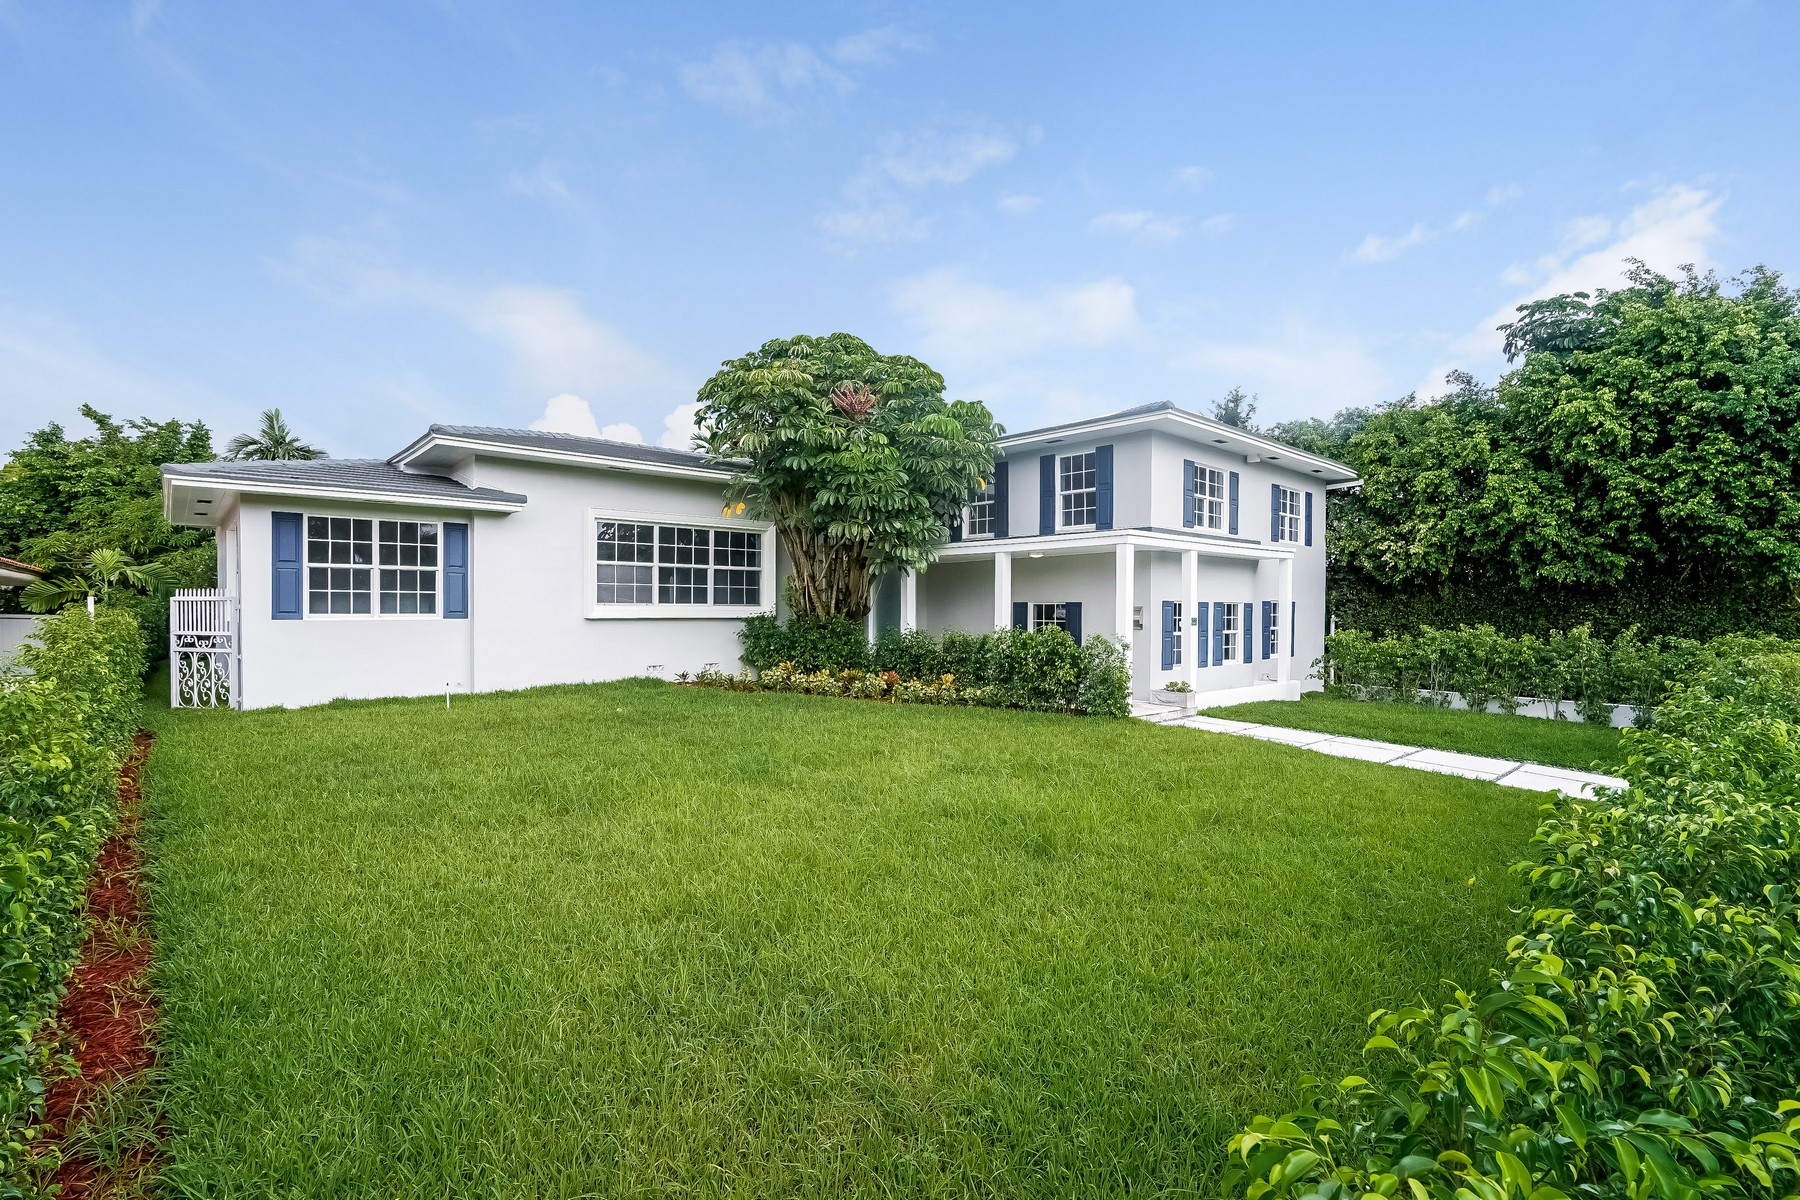 Single Family Home for Sale at 4454 Meridian Ave Miami Beach, Florida 33149 United States